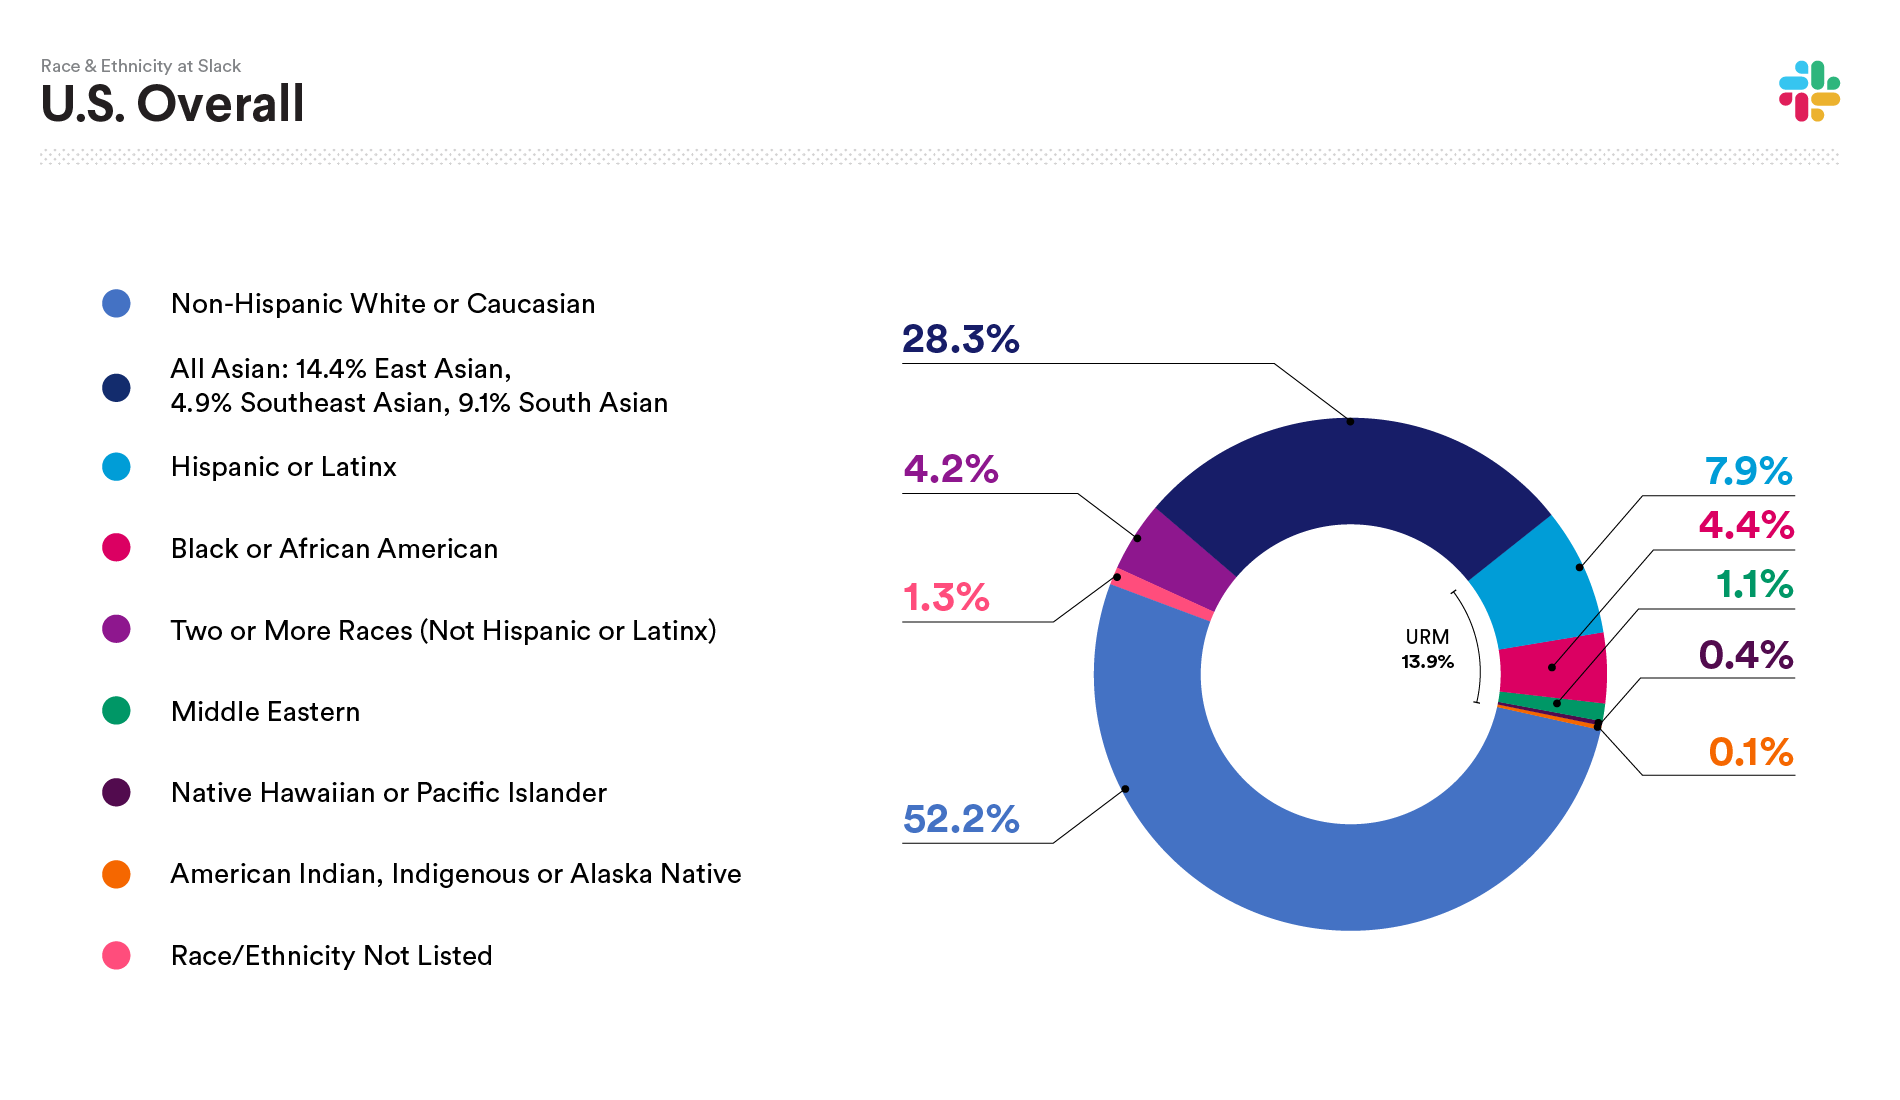 2019 Slack data on U.S. Race and Ethnicity Overall: Non-Hispanic White or Caucasian 52.2%; All Asian: 28.3%; HIspanic or Latinx 7.9%; Black or African American 4.2%; Two or more races (not Hispanic or Latinx) 4.2%; Middle Eastern 1.1%; Native Hawaiian or Pacific Islander 0.4%; American Indian, Indigenous or Alaska Native 0.1%; Race/Ethnicity not listed 1.3%